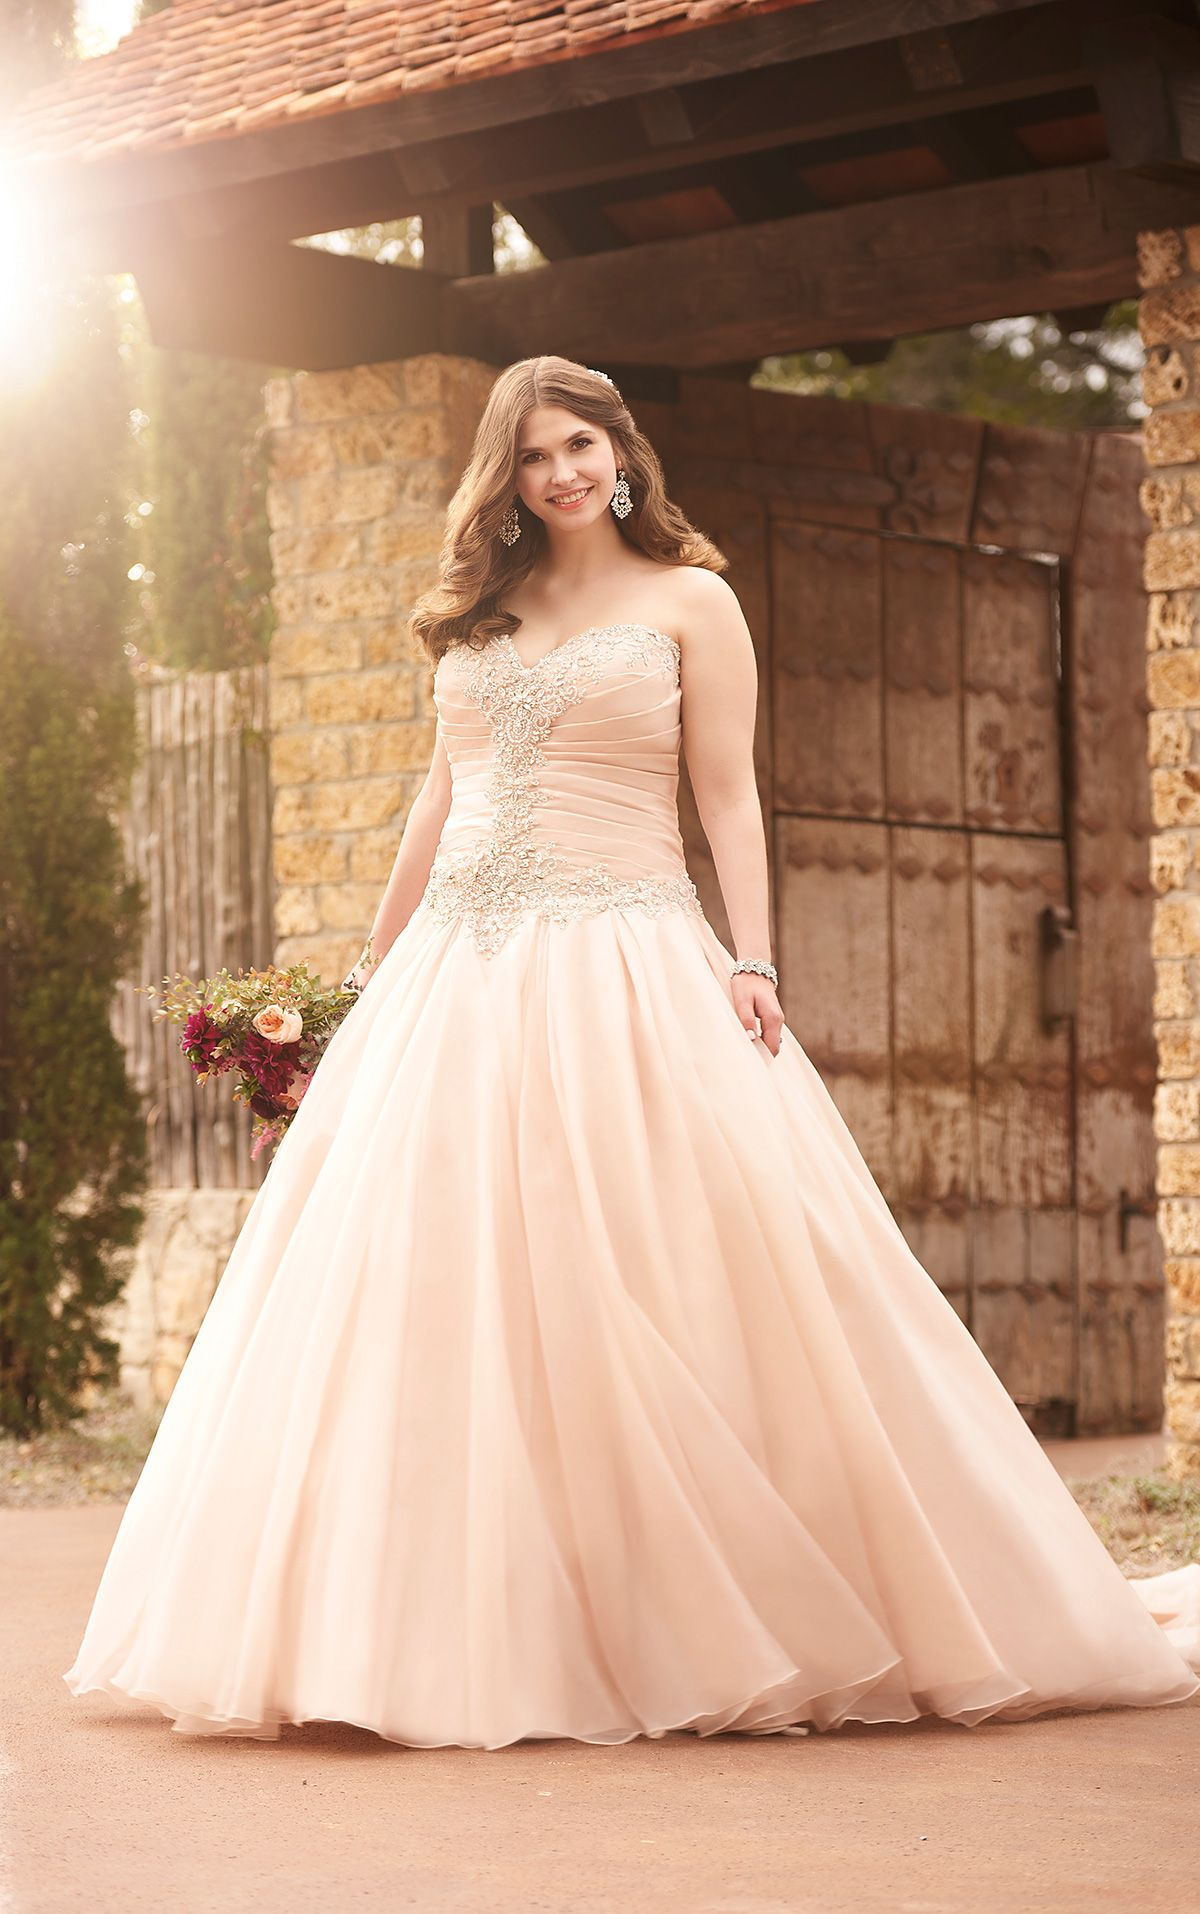 This Essense Of Australia Regency Organza Princess Plus Size Wedding Gown Is Perfect For Your Storybook Romance